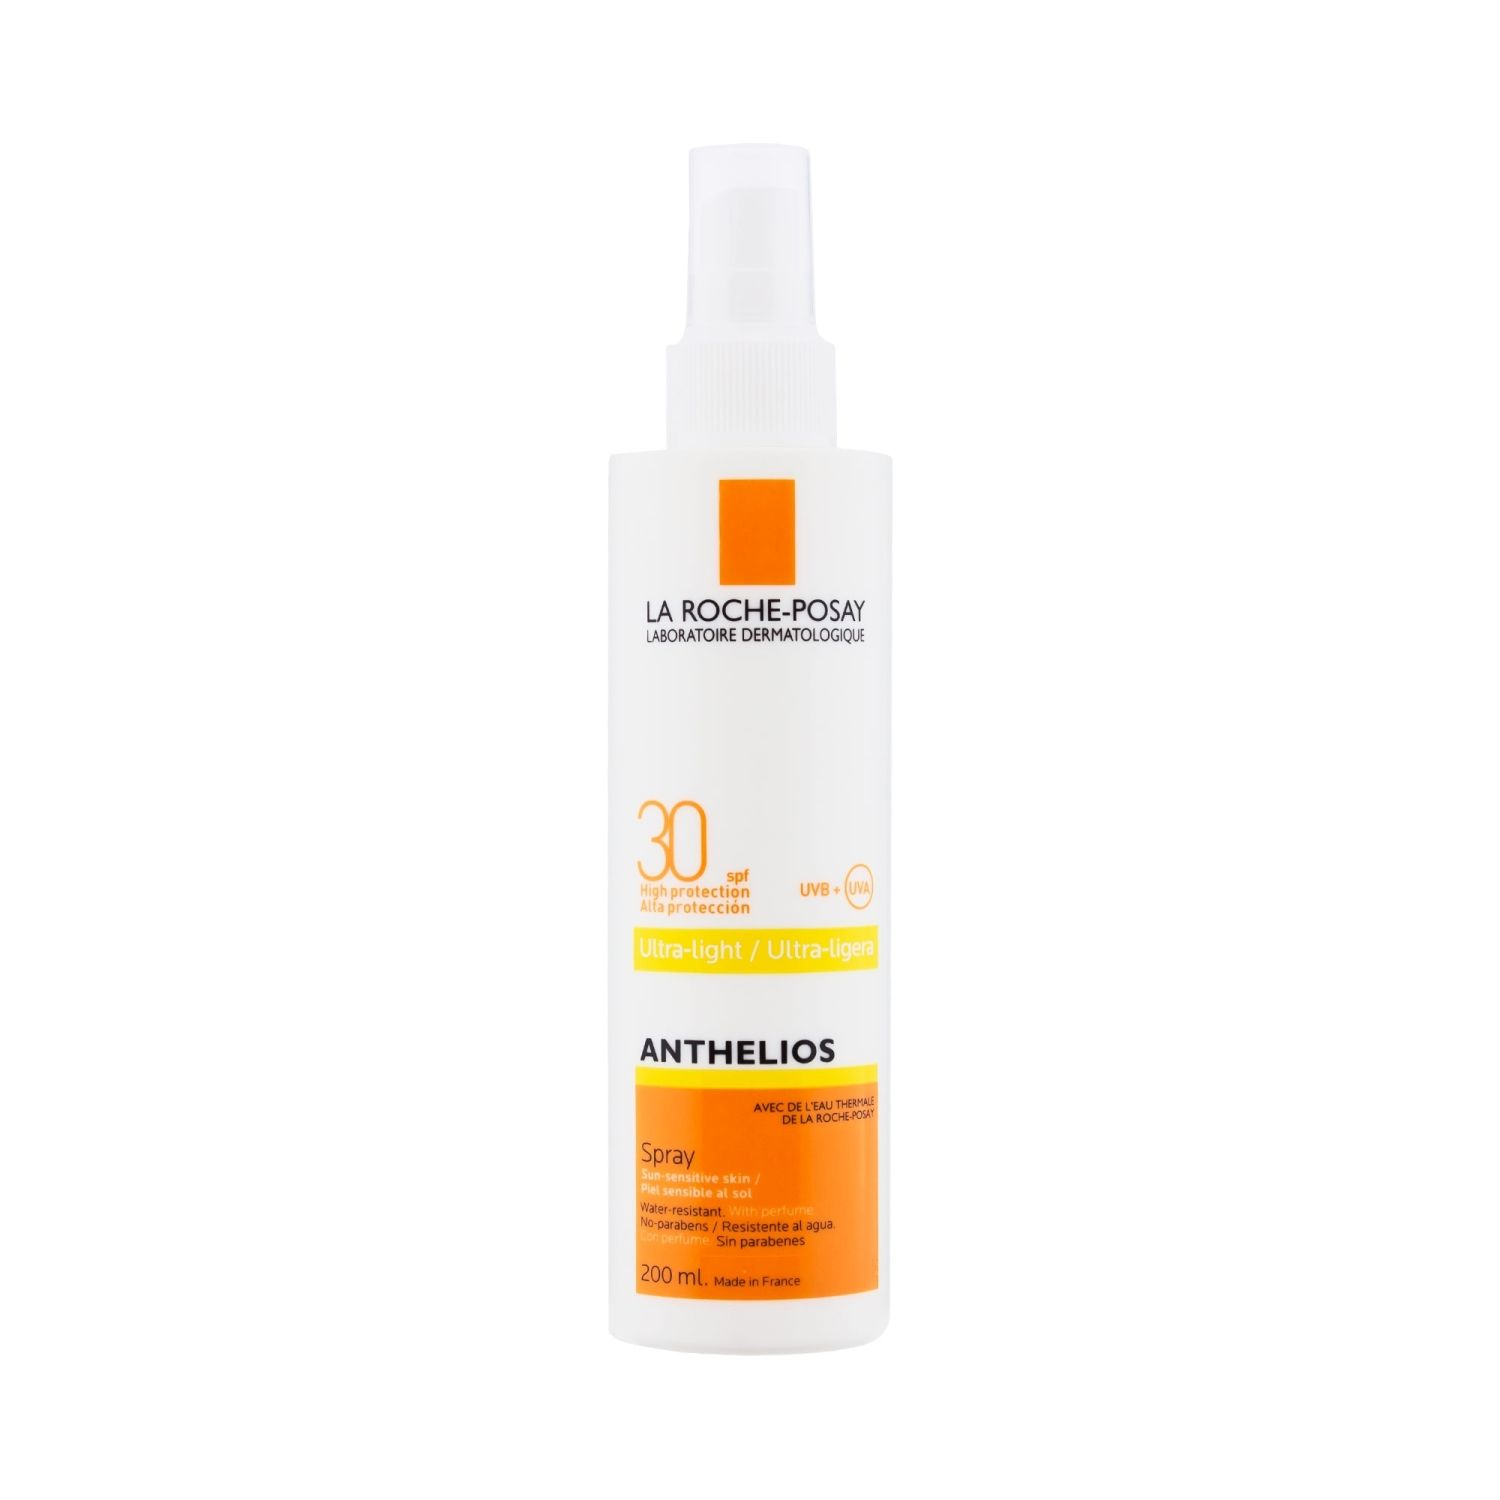 Anthelios Spray Invisible SPF 30 50 ml